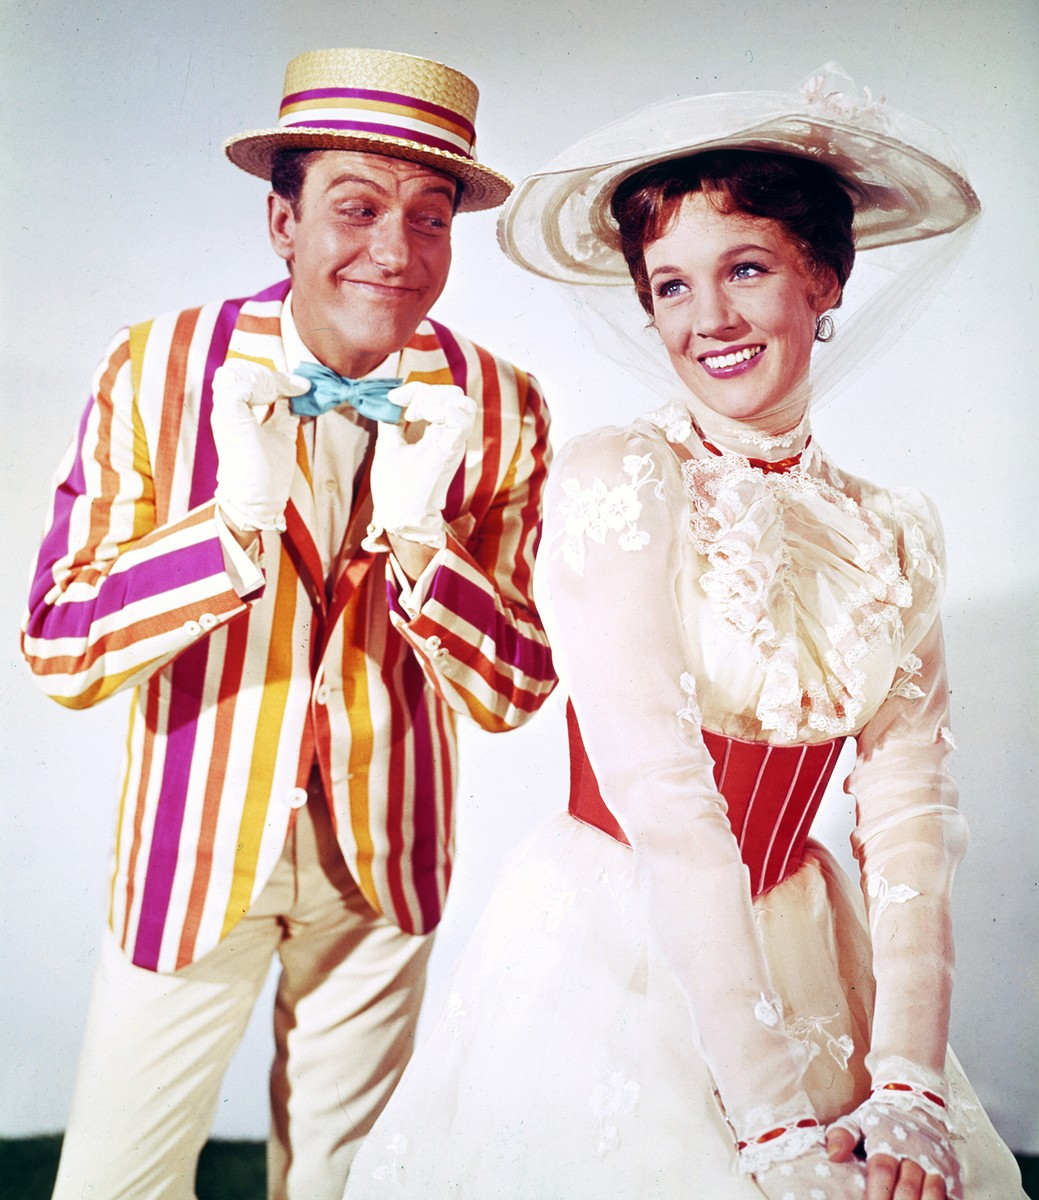 Dick Van Dyke (as Bert), Julie Andrews (as Mary Poppins) in Mary Poppins (1964)